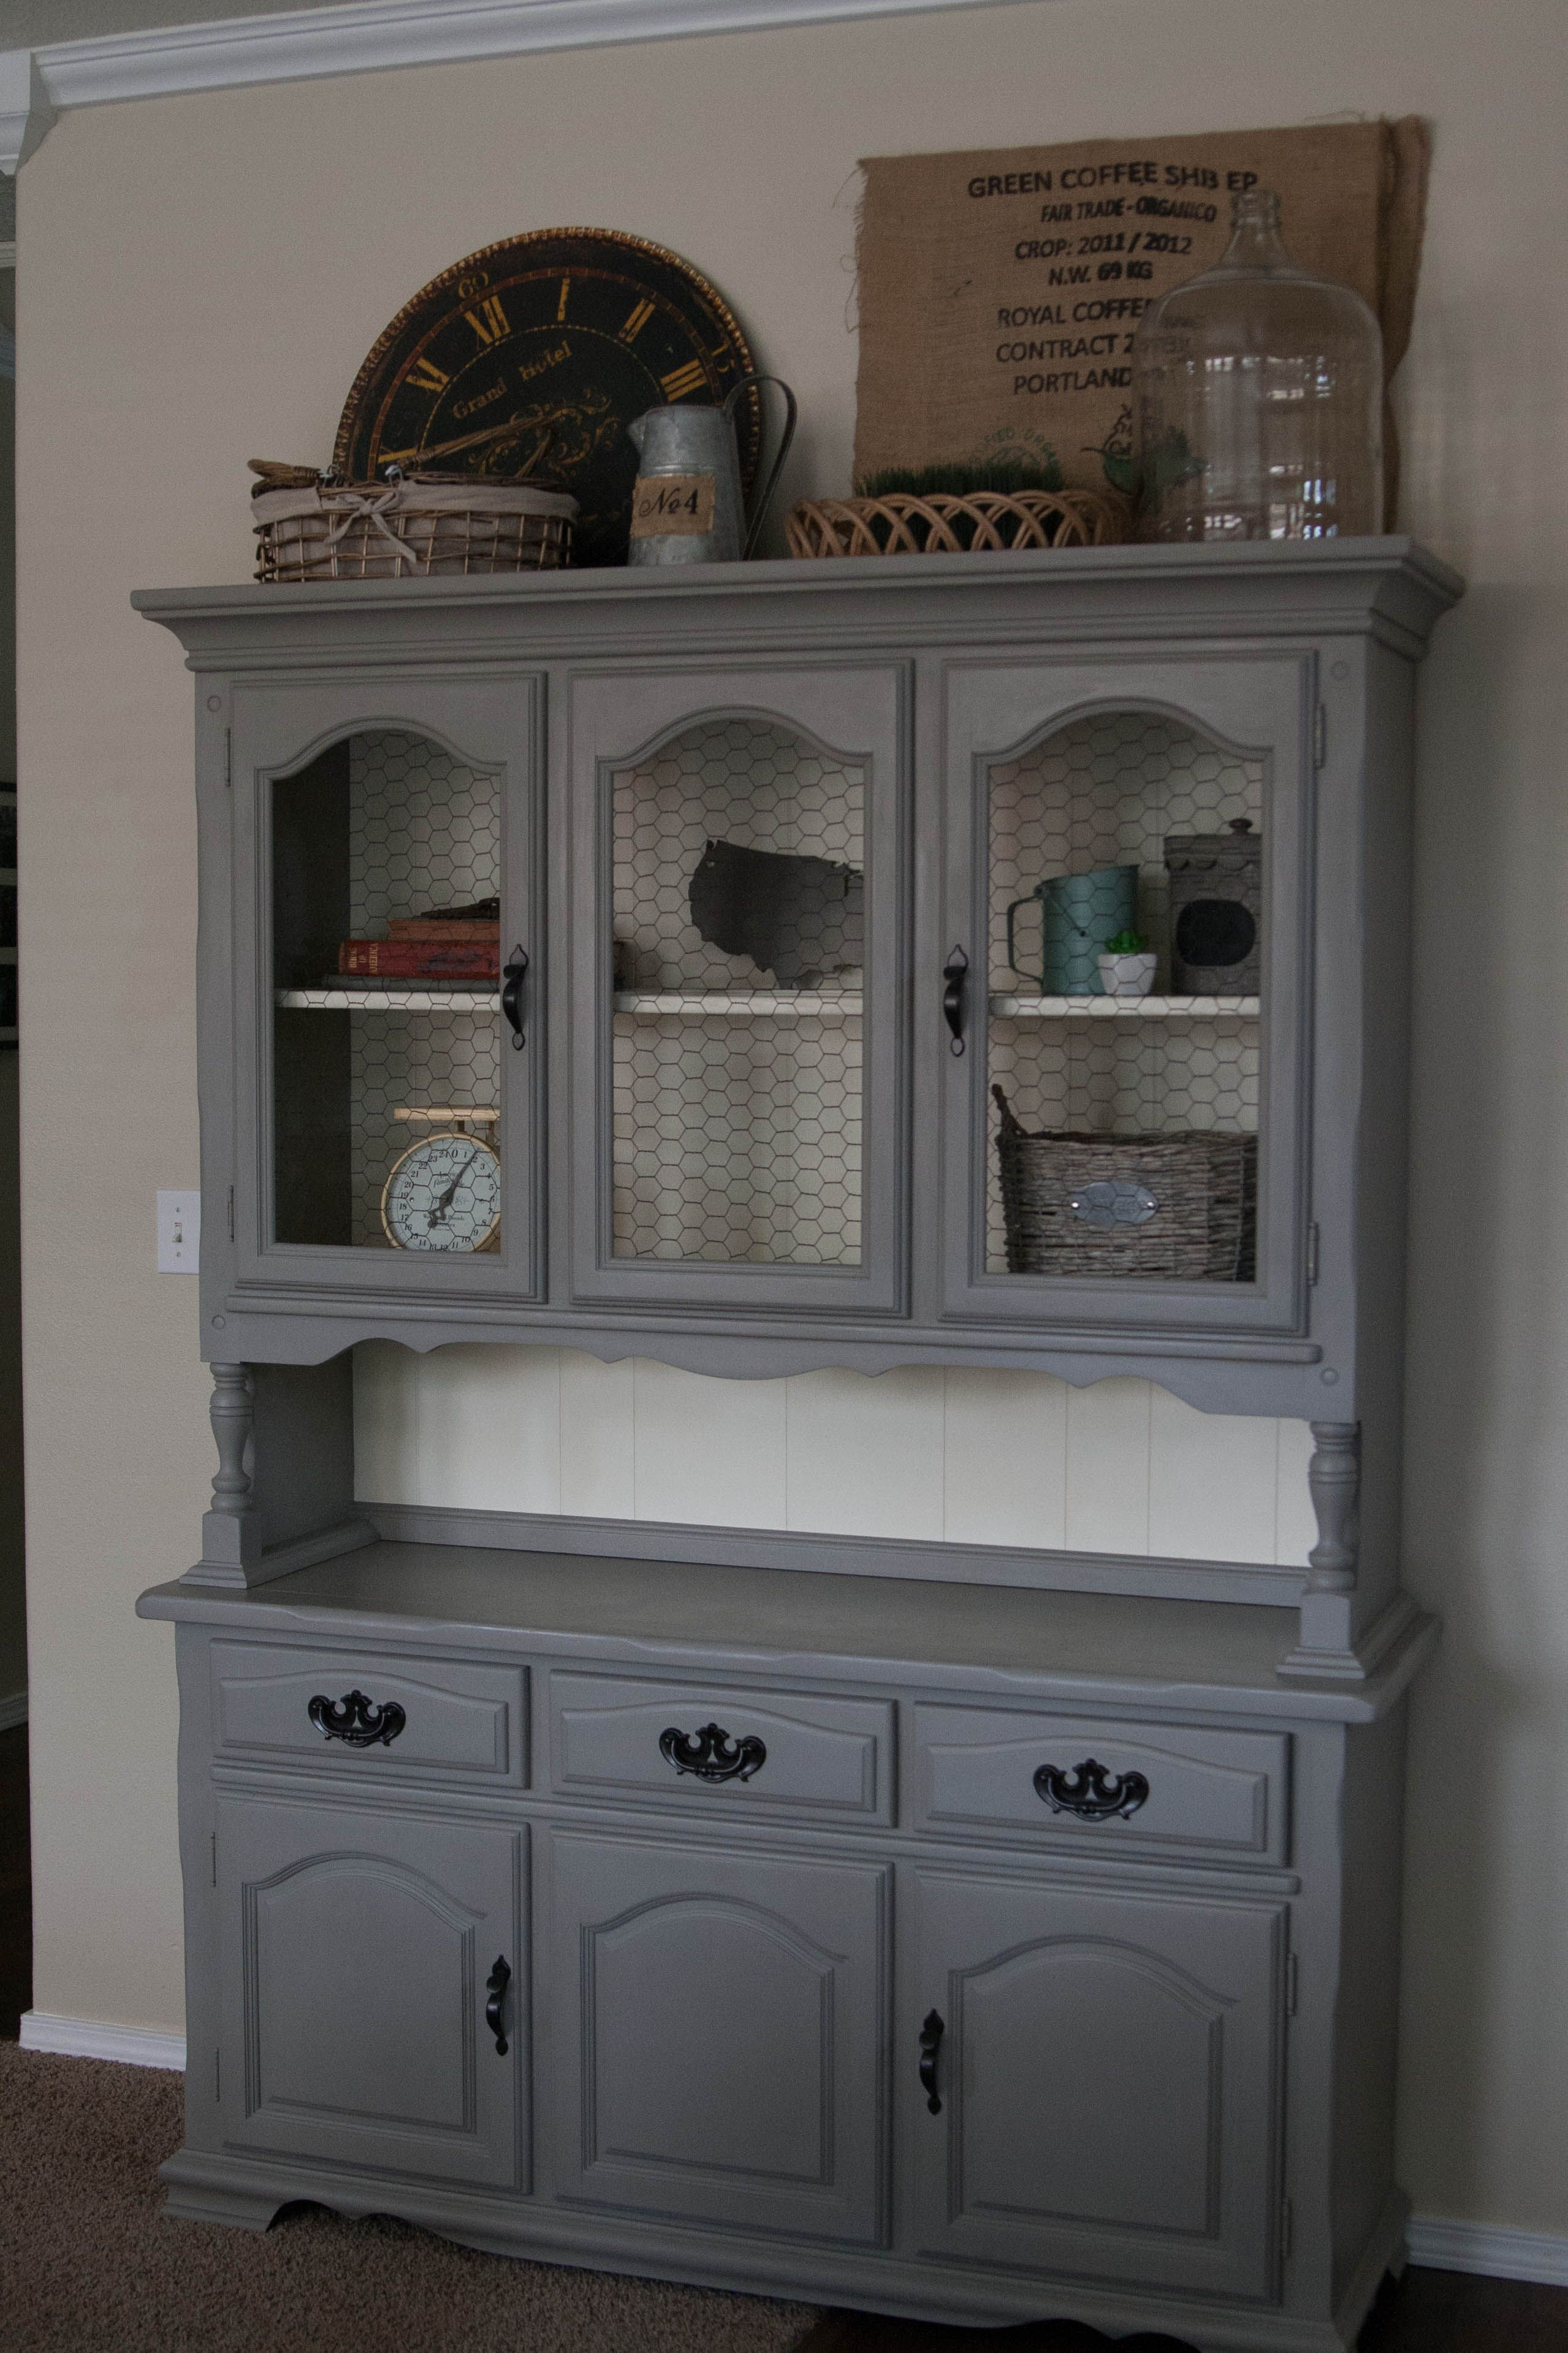 Refinished Hutch Annie Sloan Chalk Paint In French Linen